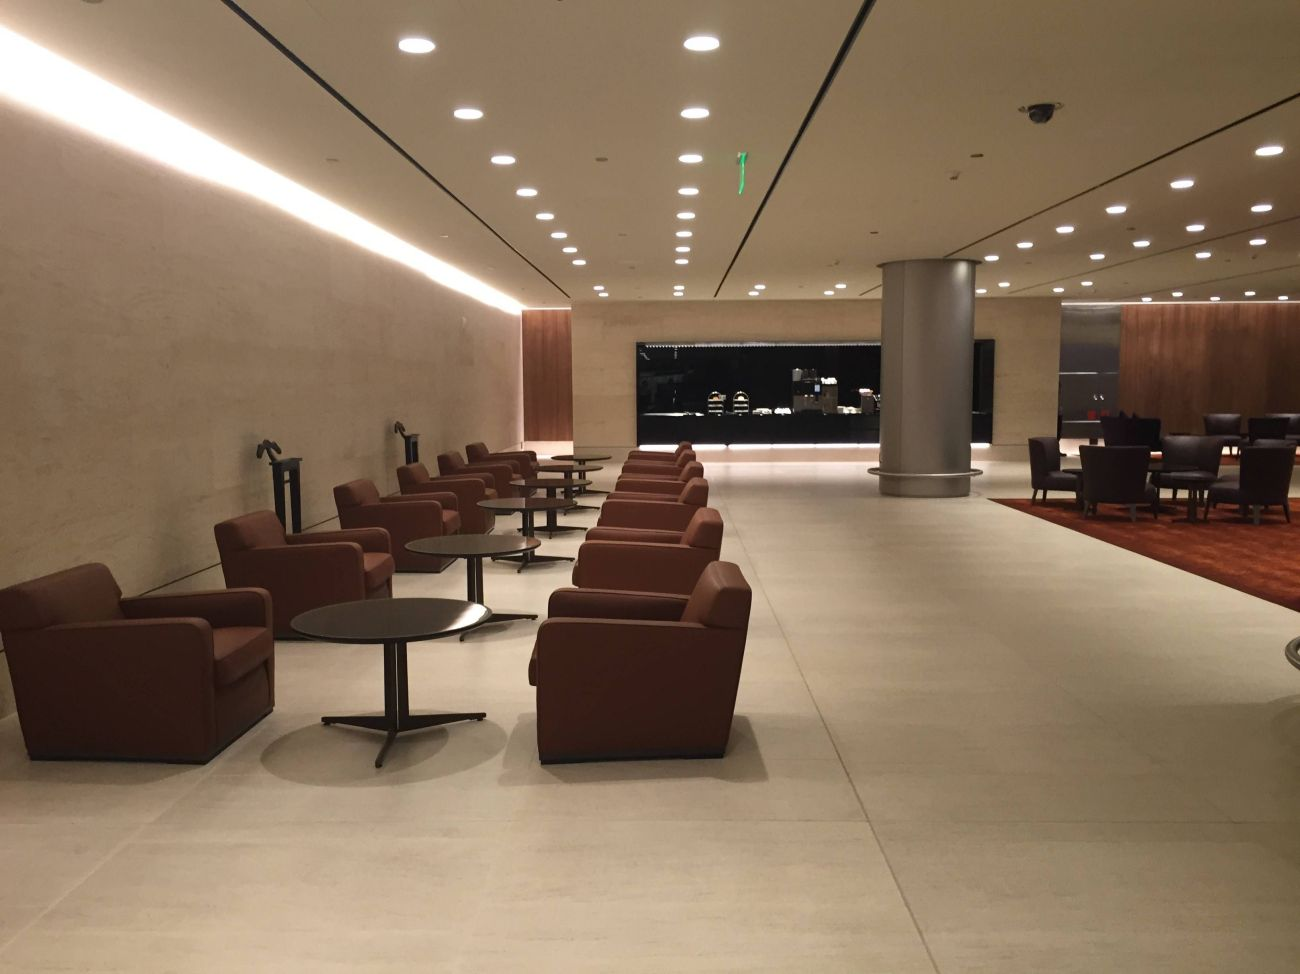 qatar airways arrival lounge